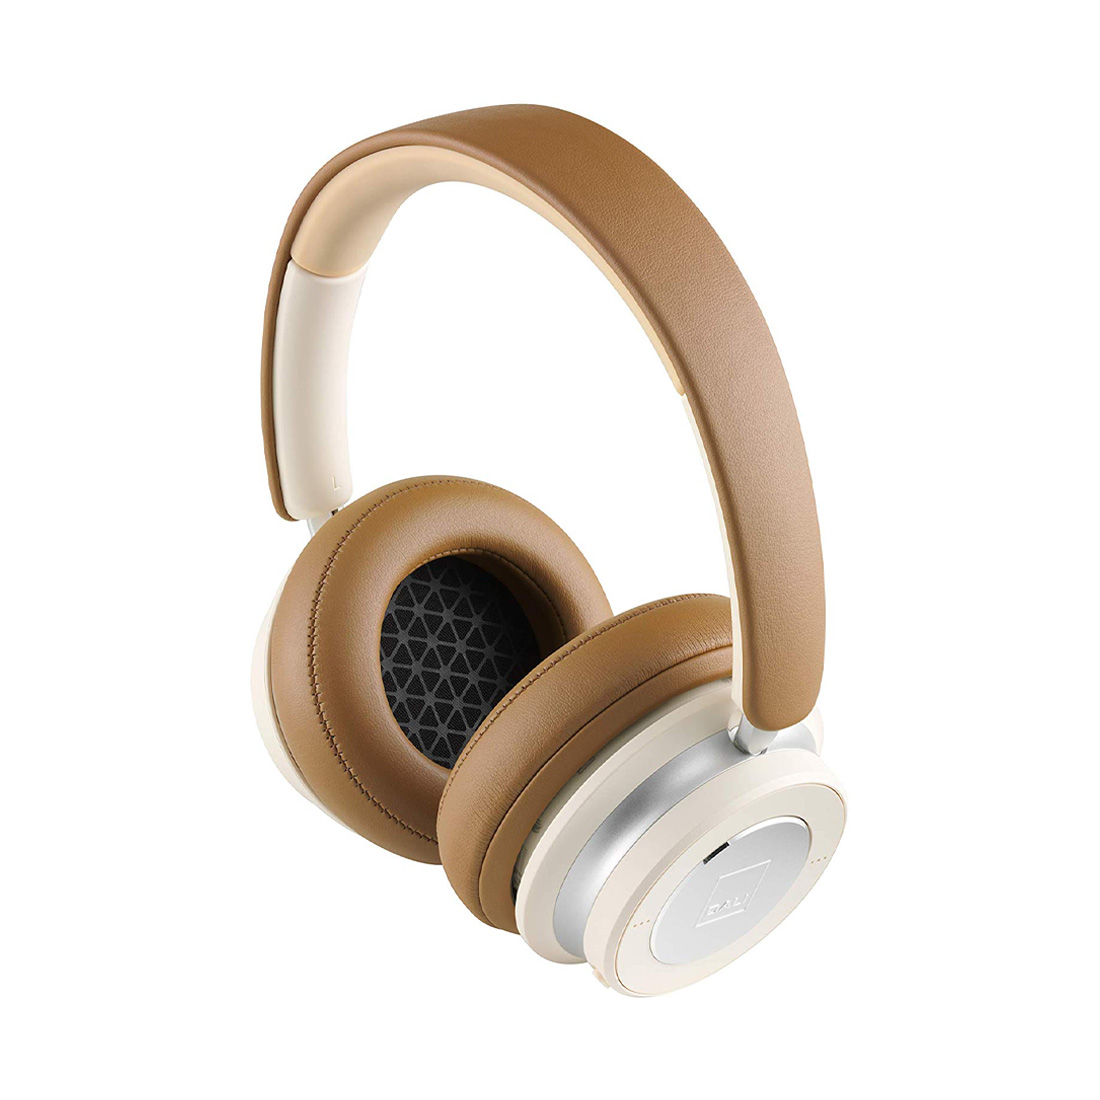 DALI IO-6 WIRELESS HEADPHONES CARAMEL WHITE